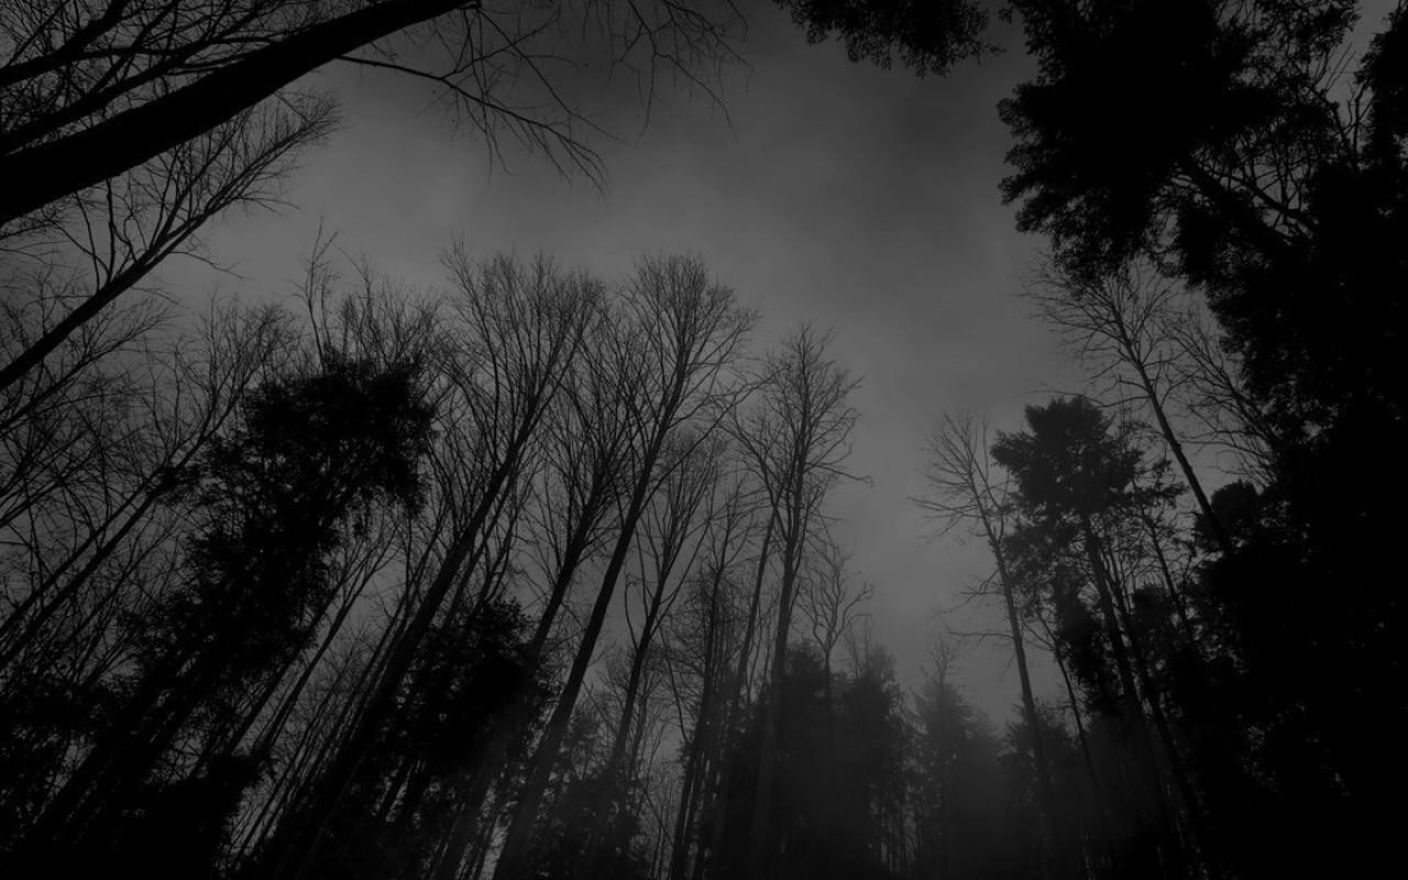 Dark Nature Black Background Hd Wallpaper Desktop Hd Wallpaper